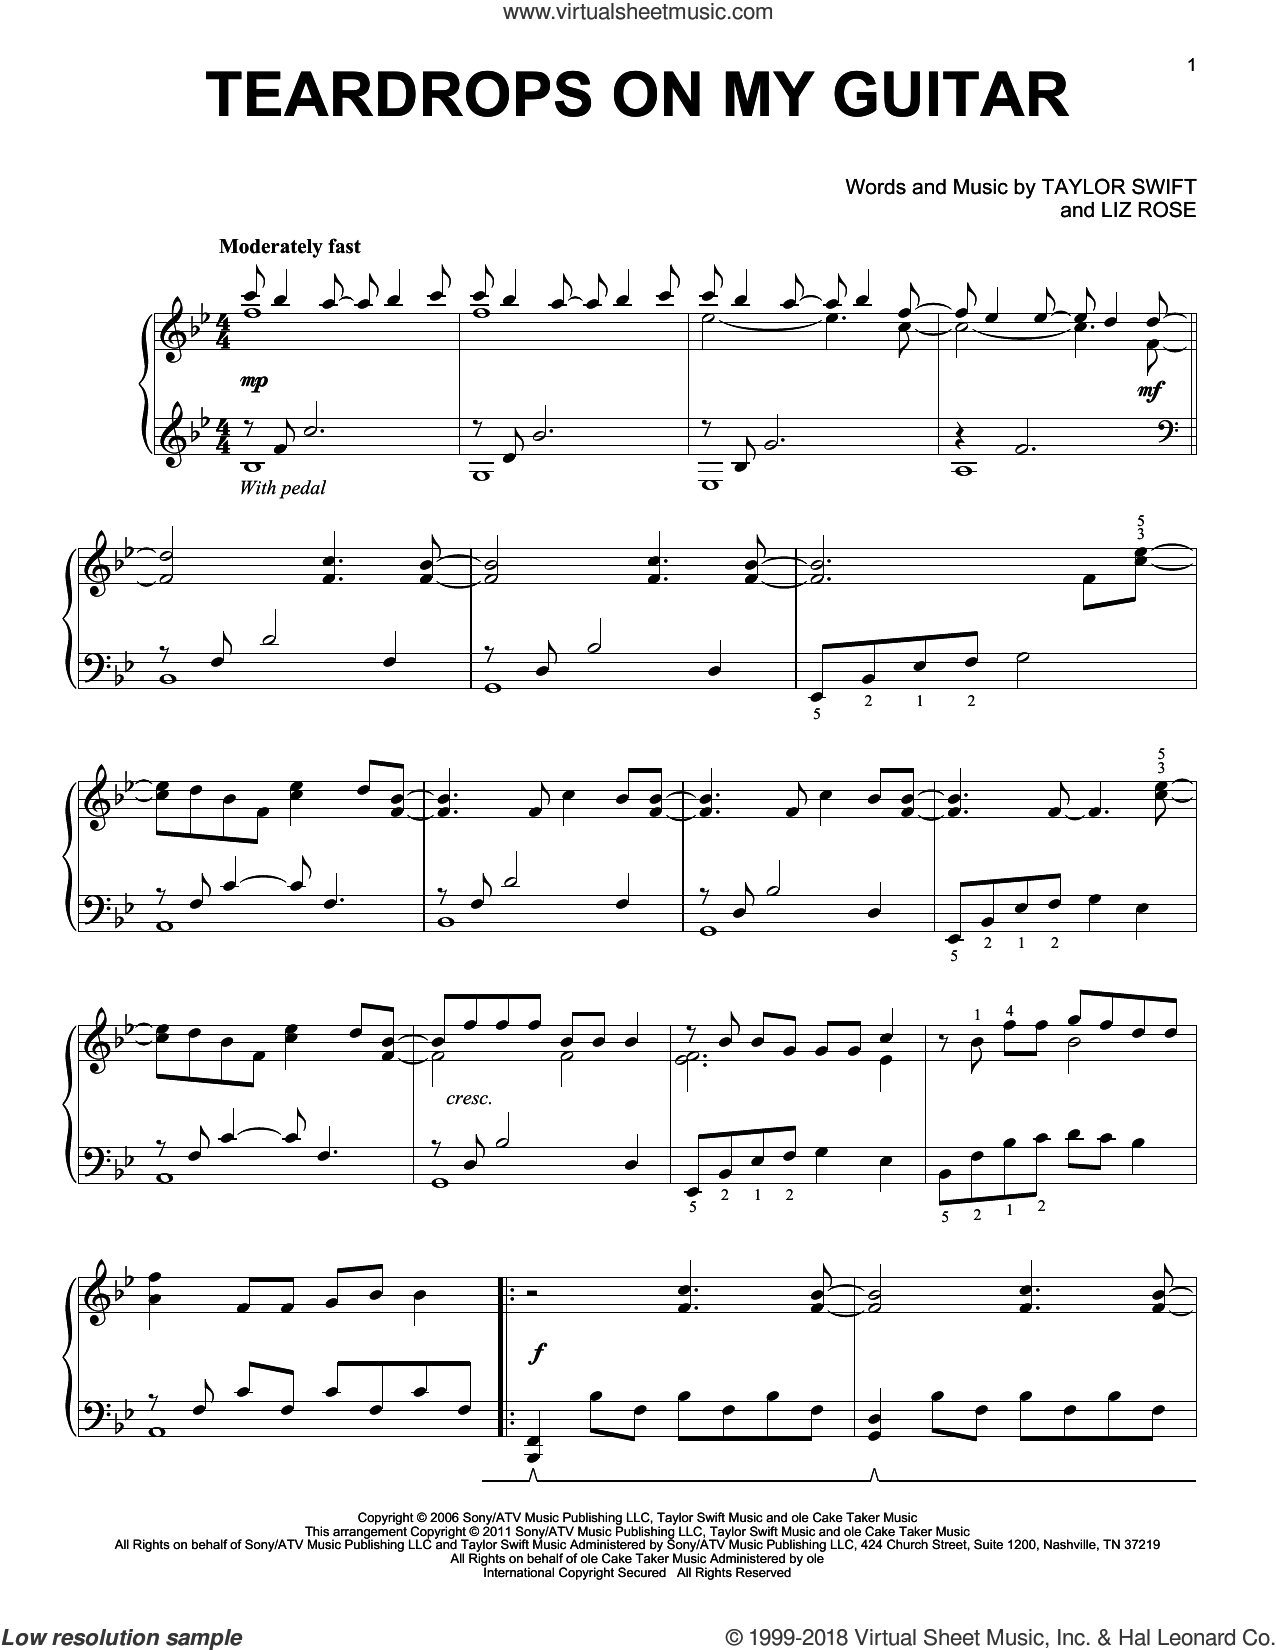 Teardrops On My Guitar sheet music for piano solo by Taylor Swift and Liz Rose, intermediate skill level